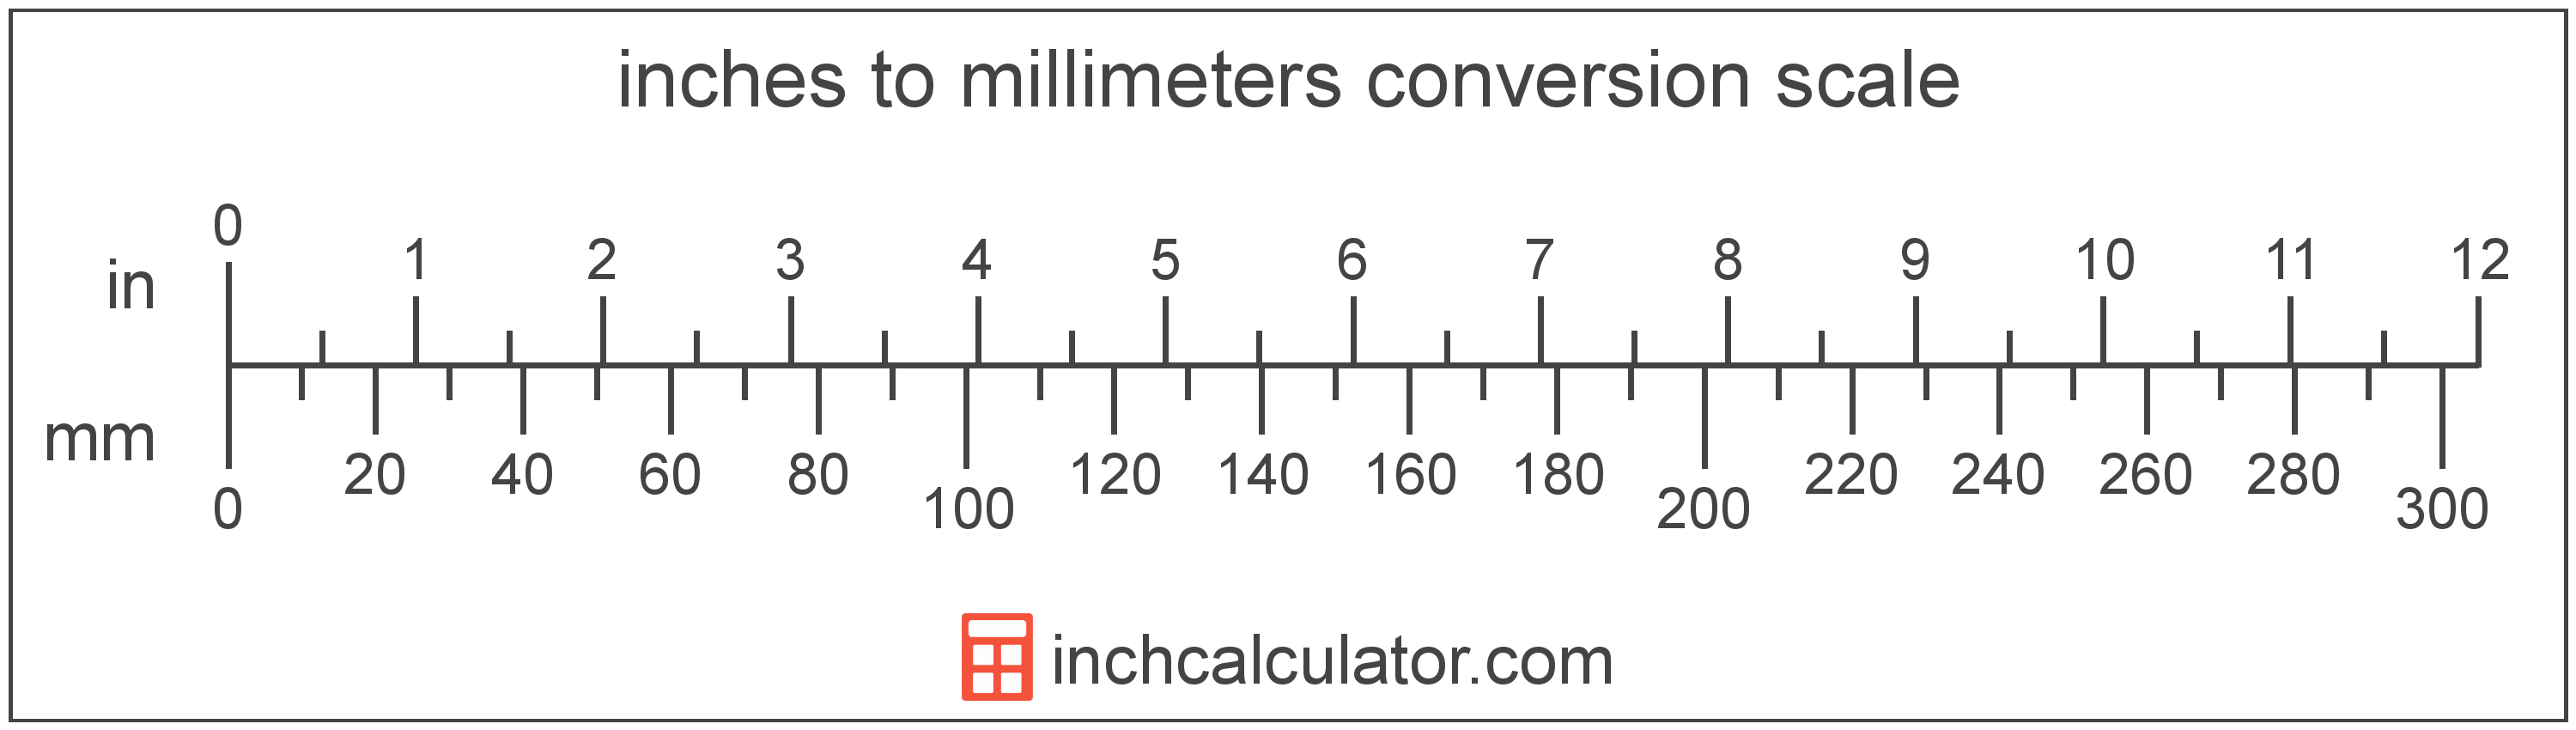 inches and miles are units used to measure length